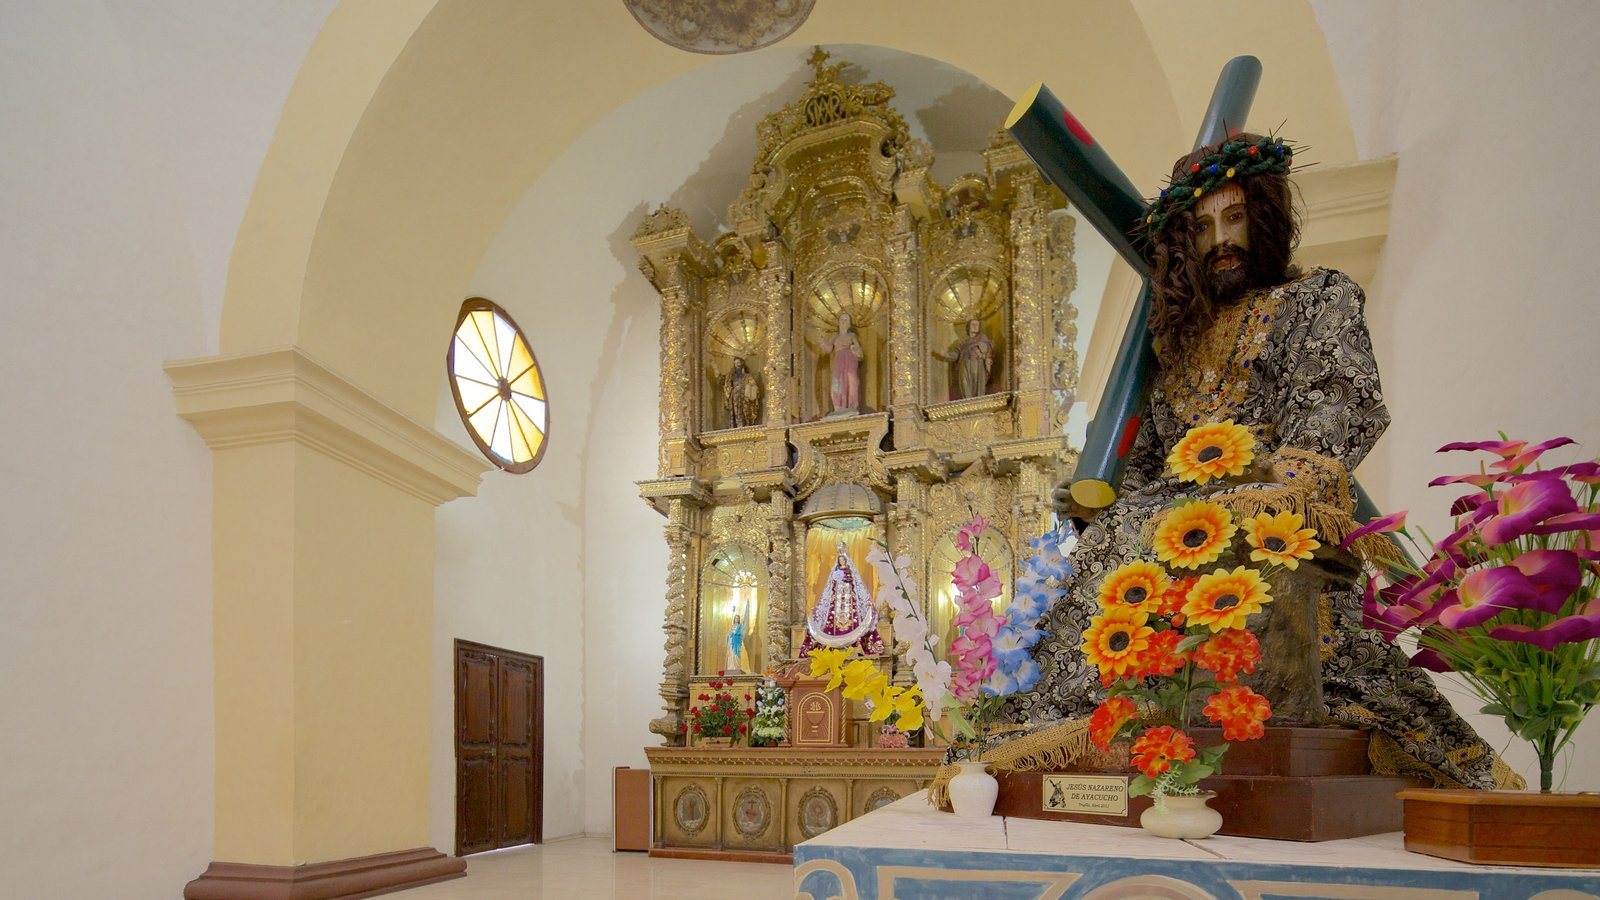 Trujillo Cathedral featuring religious elements, interior views and a church or cathedral